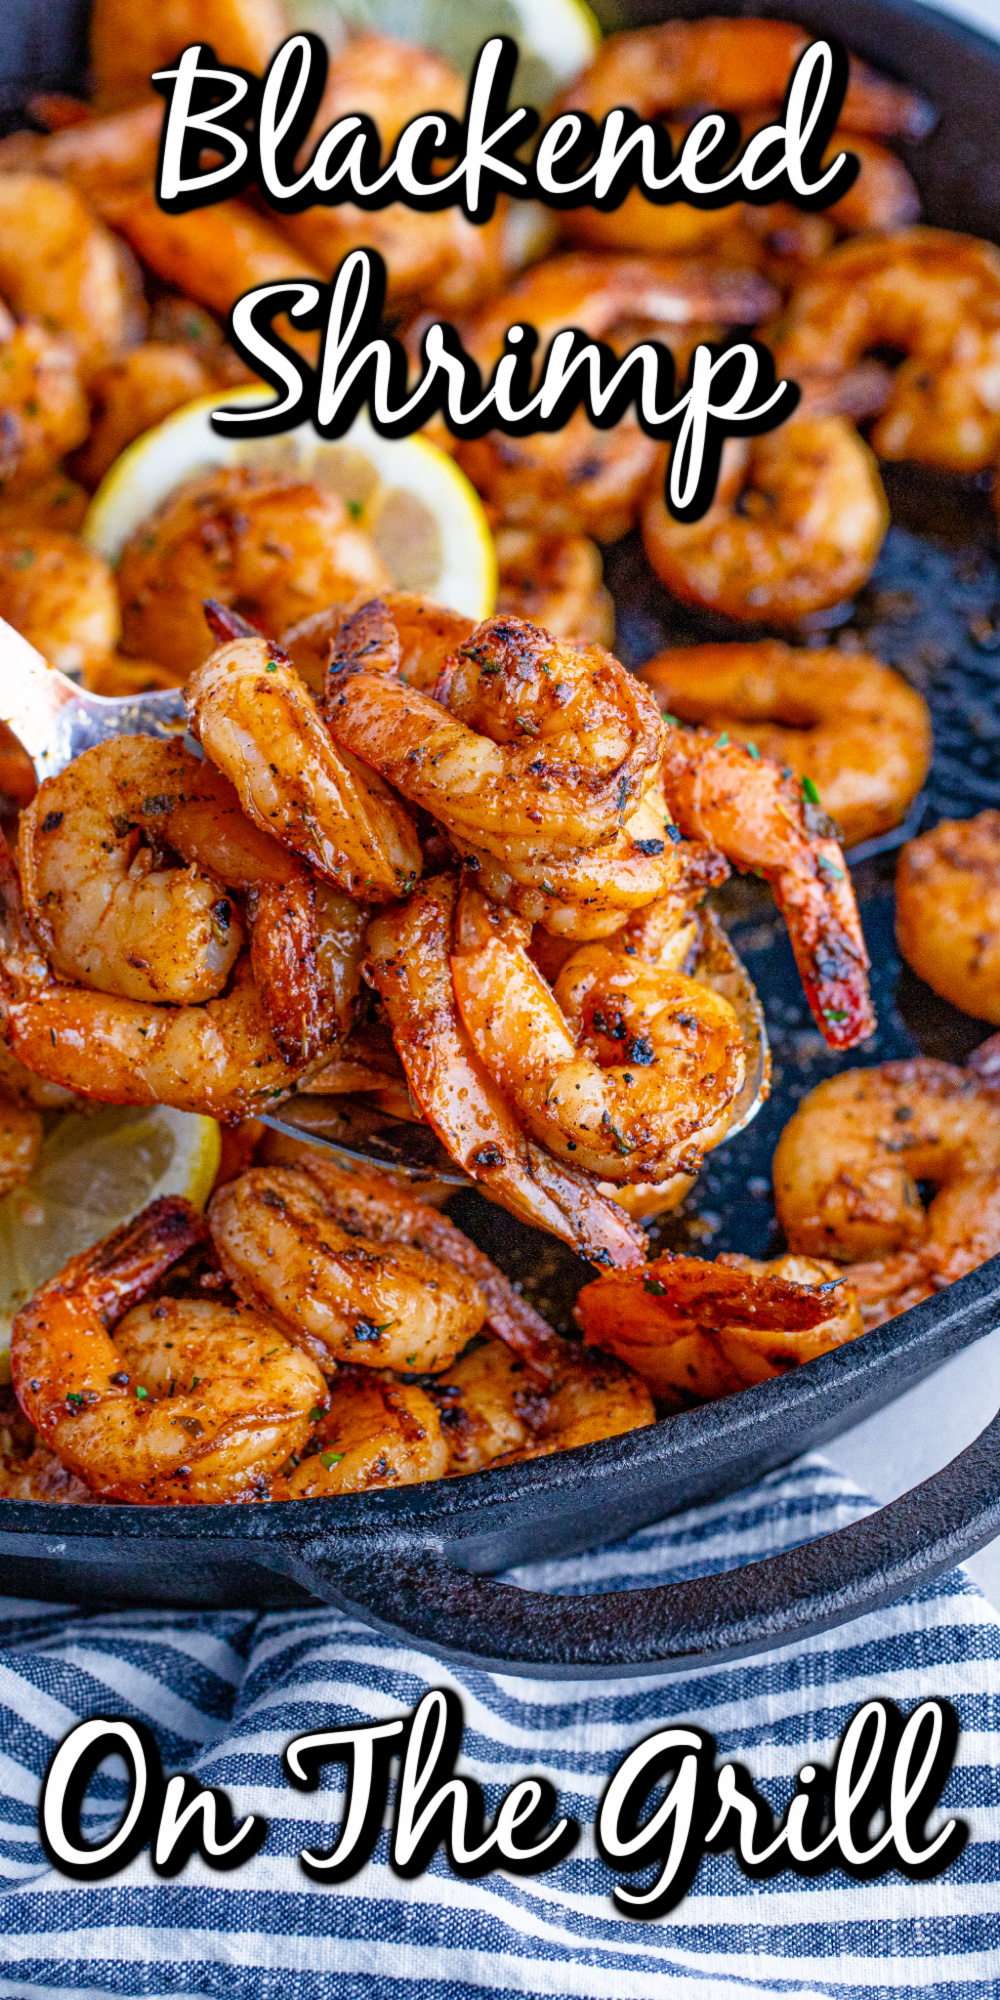 The blackening spices in this blackened shrimp recipe will put some pop into your shrimp!